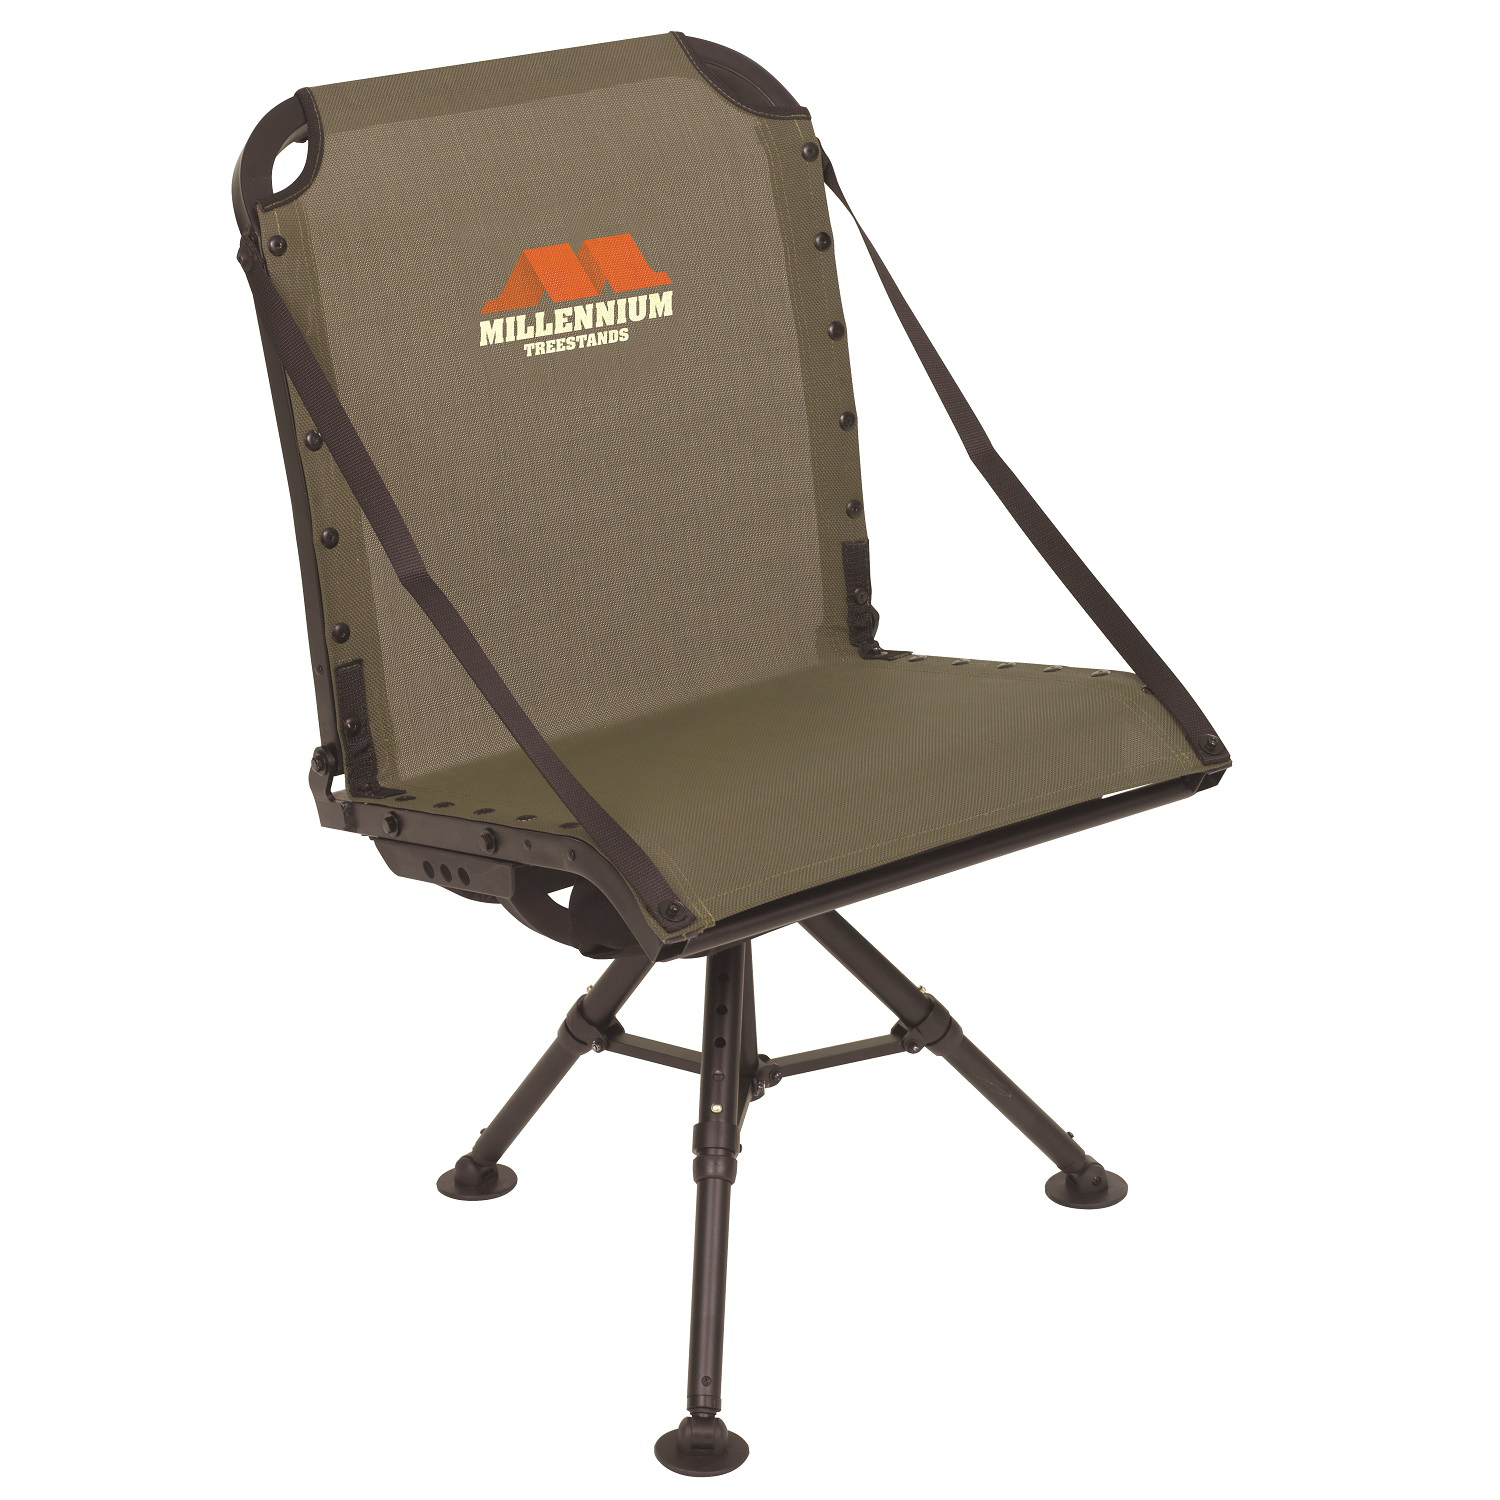 Blind Chair Millennium Treestands Blind Chair